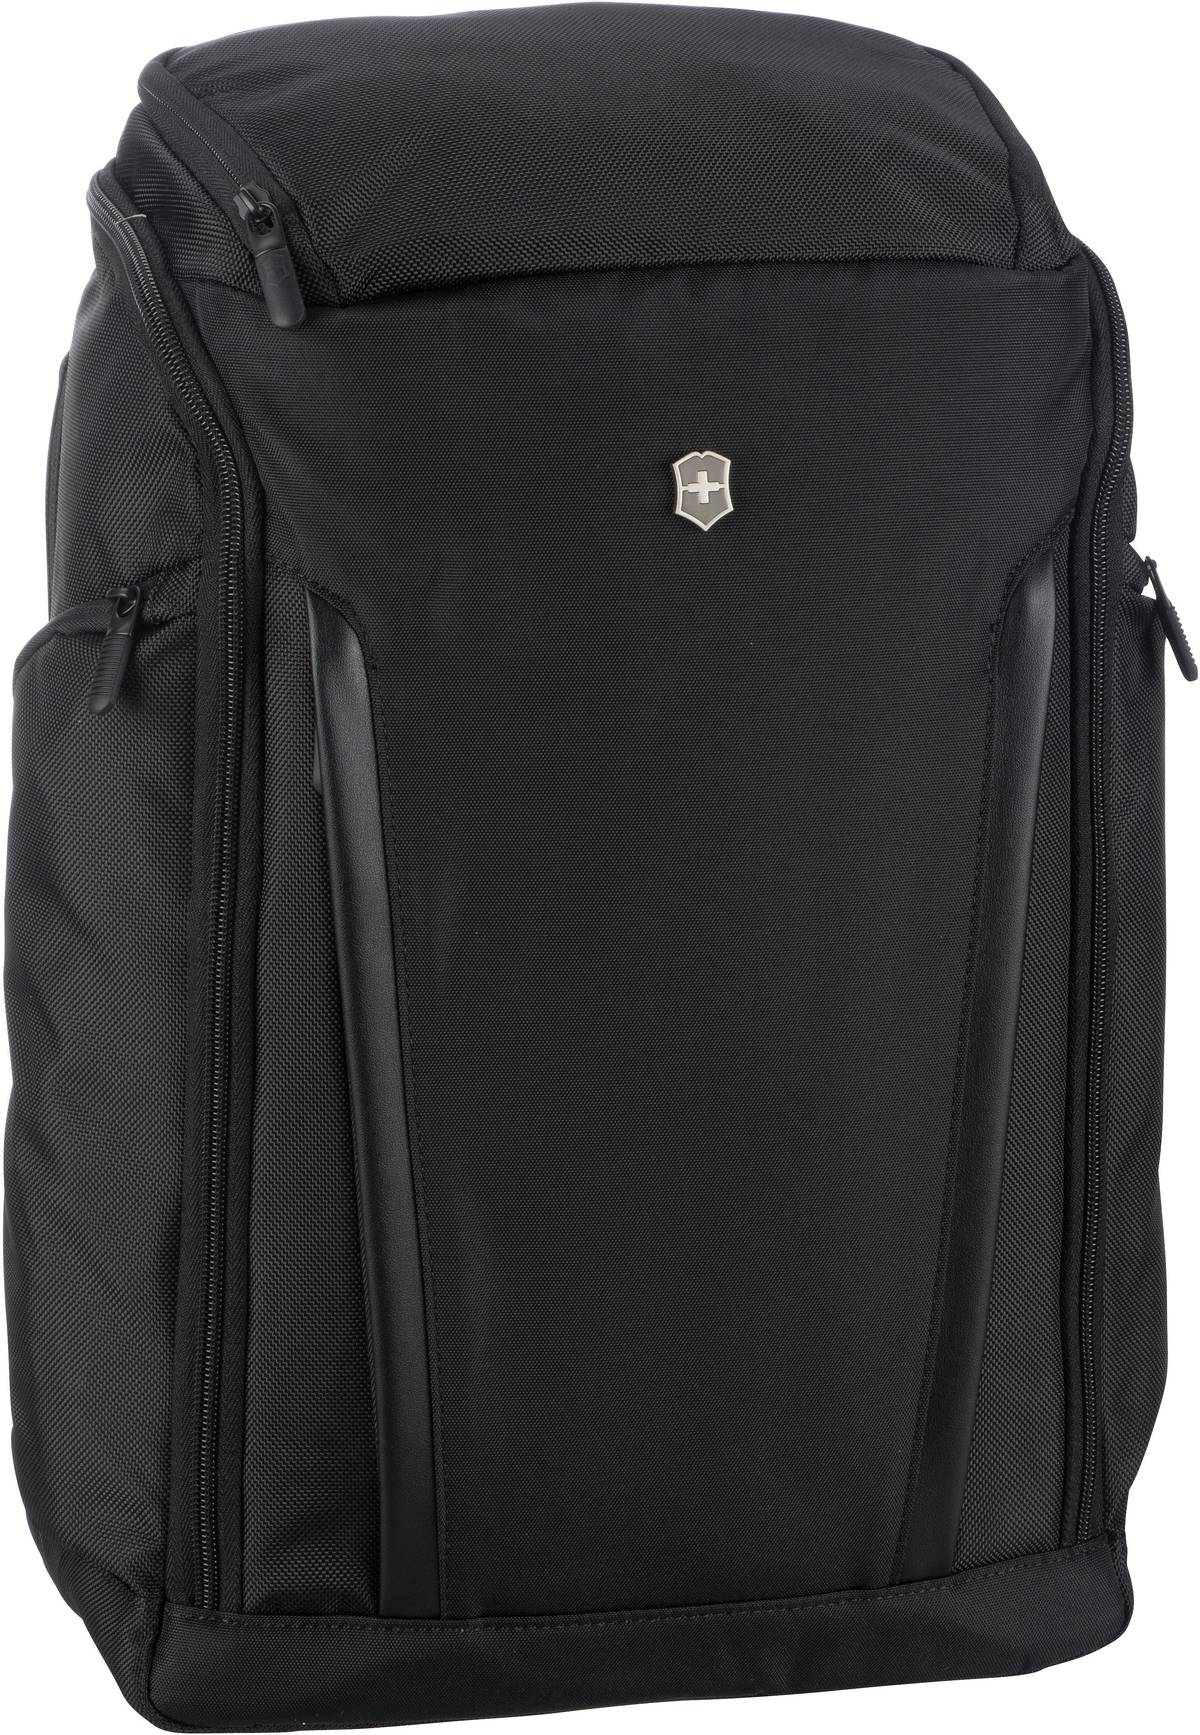 Laptoprucksack Altmont Professional Fliptop Laptop Backpack Black (26 Liter)